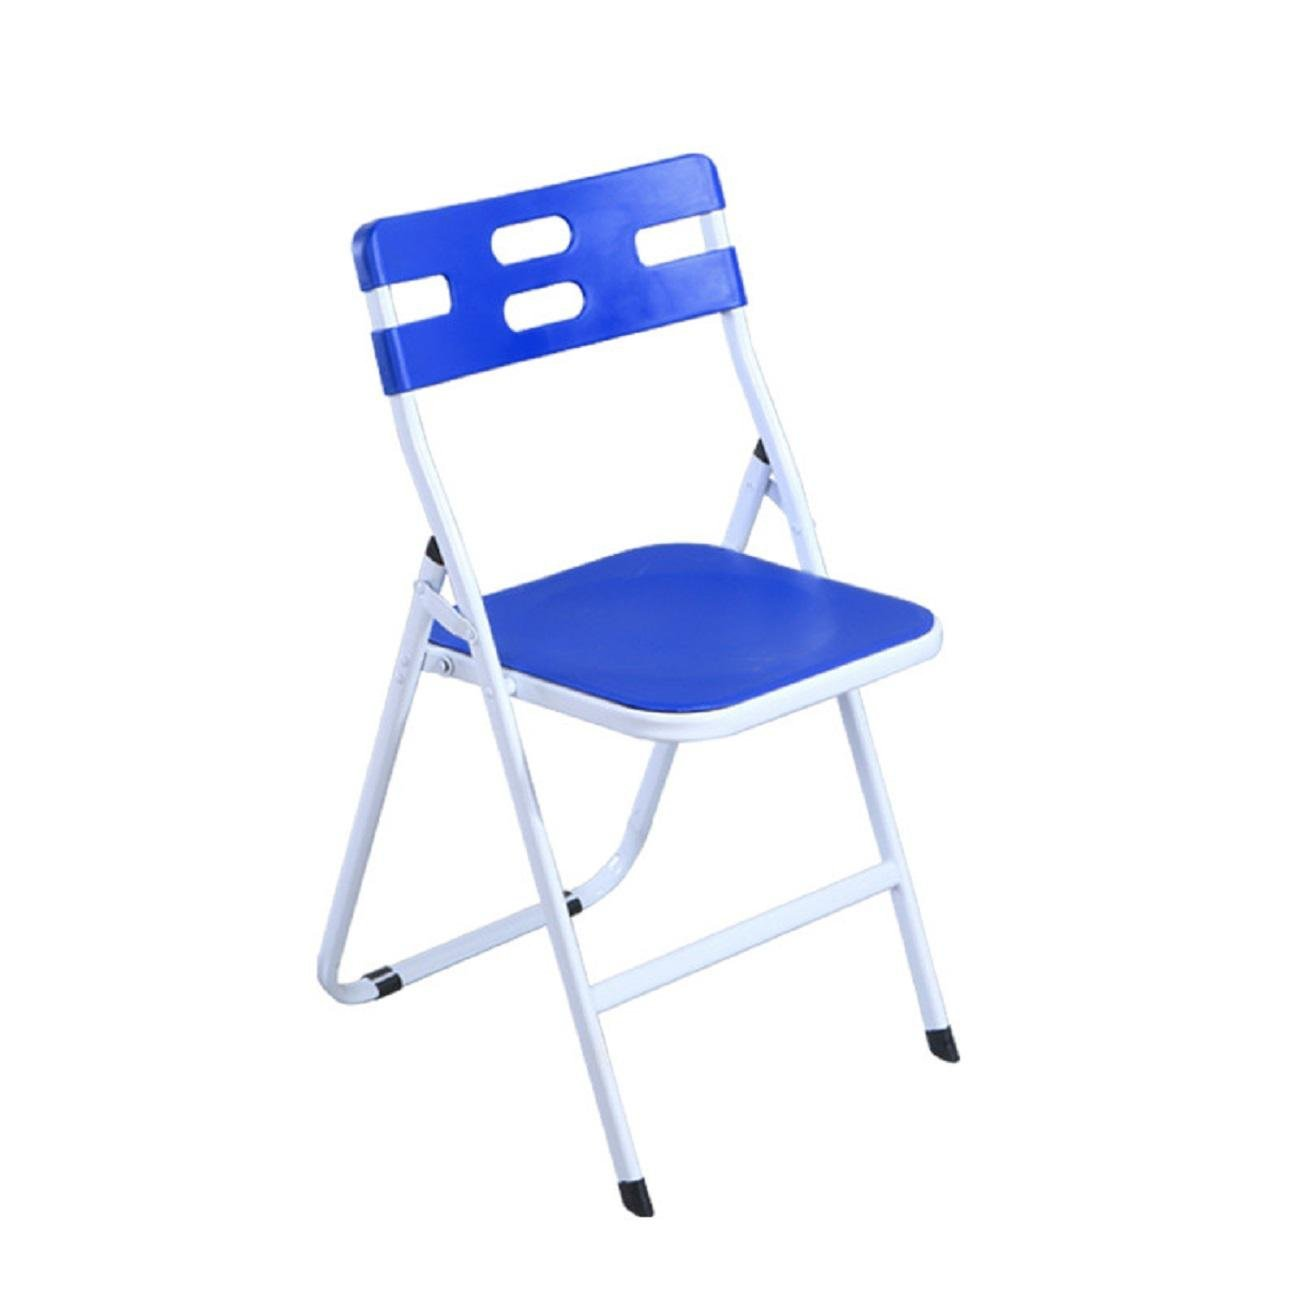 JUIANG Plastic Folding Backrest Stool Collapsible Conference Office Chair Training Chair Student Plastic Dining Chair Weighing 180kg